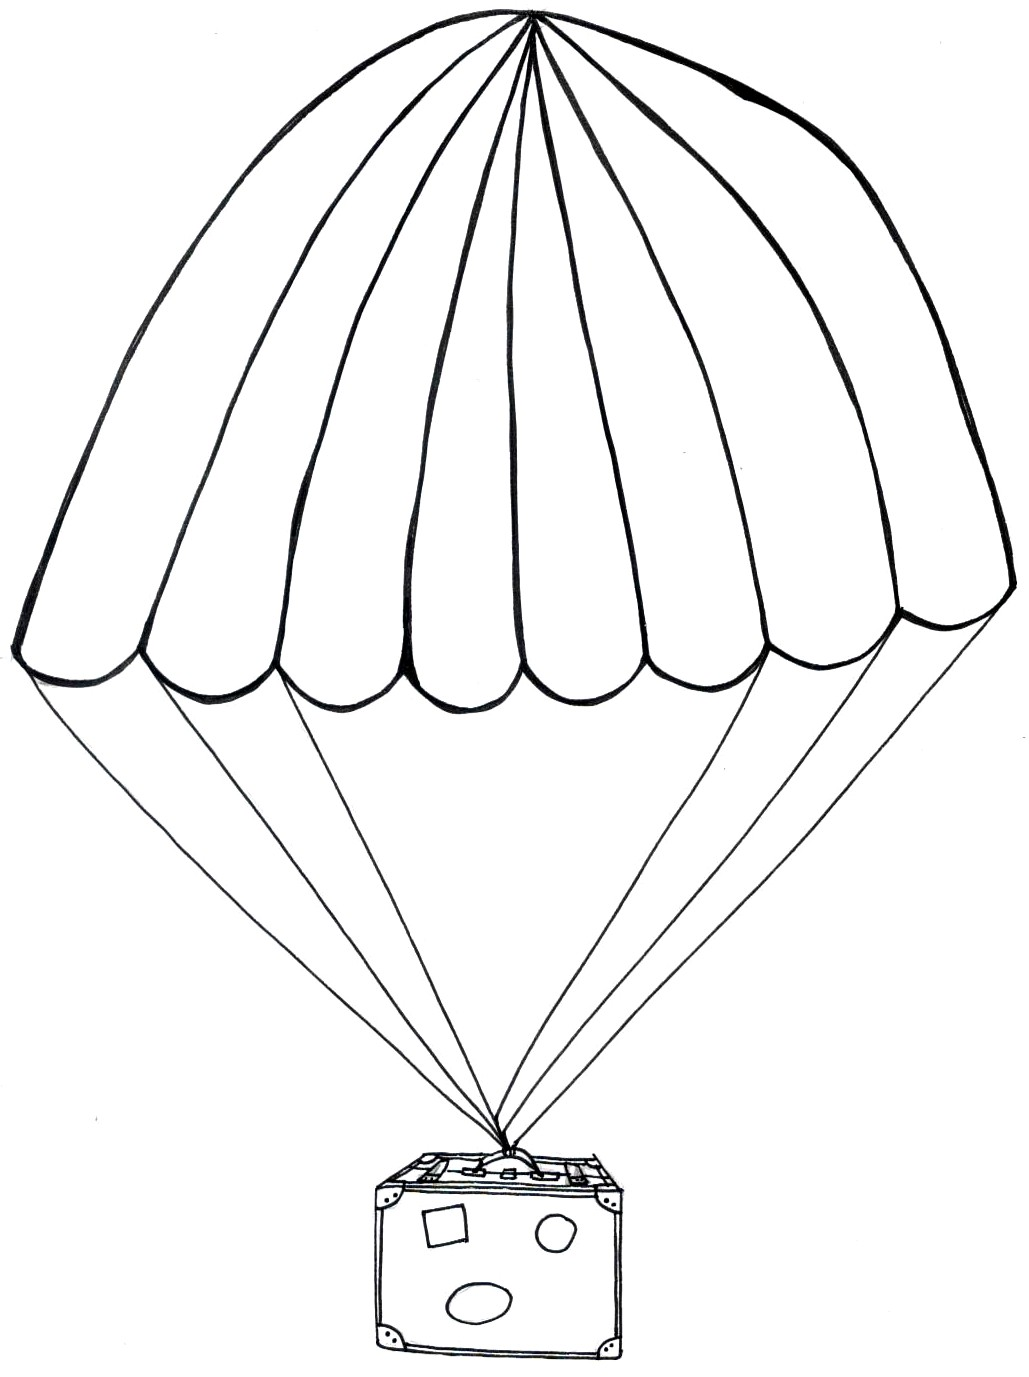 Free Coloring Pages Of Parachute Parachute Coloring Pages